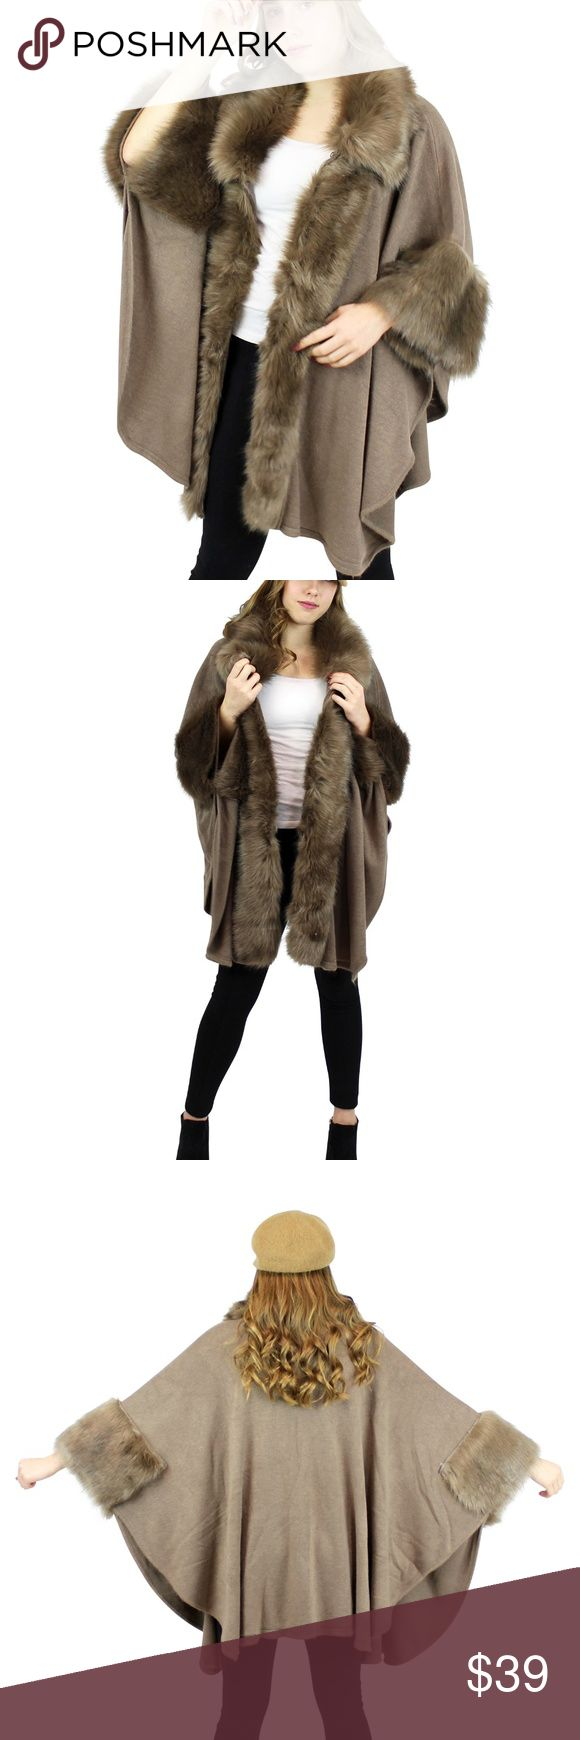 """Soft Faux Fur Trimmed Cape Open Front Wrap Great for that night out or ice skating. Simply elegant and luxurious wrap! This elegant, luxurious and cozy-soft wrap is designed to drape your shoulders with warmth on those chilly mornings and evenings. It brings a stylish finishing touch to any outfit. A look that never goes out of style. One size fits most up to XL. Asymmetrical hem.Dimensions: 34""""L in the back, 21""""W front flip, 26""""L front faux fur.Material: 100% acrylic Jackets & Coats Capes"""